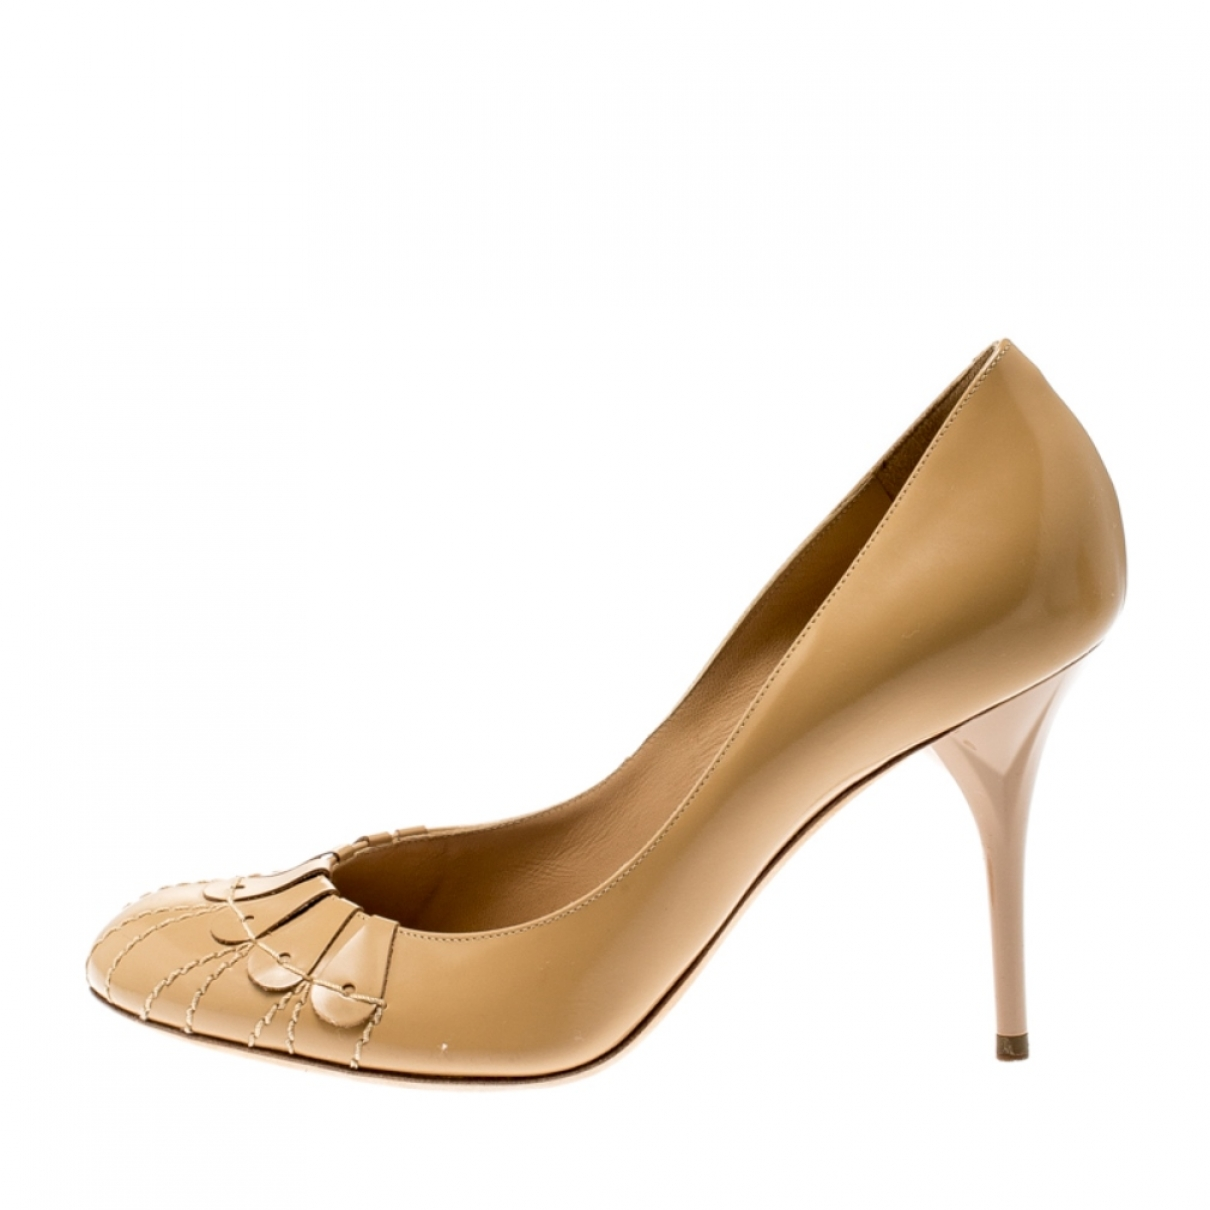 Dior \N Beige Leather Heels for Women 6.5 US